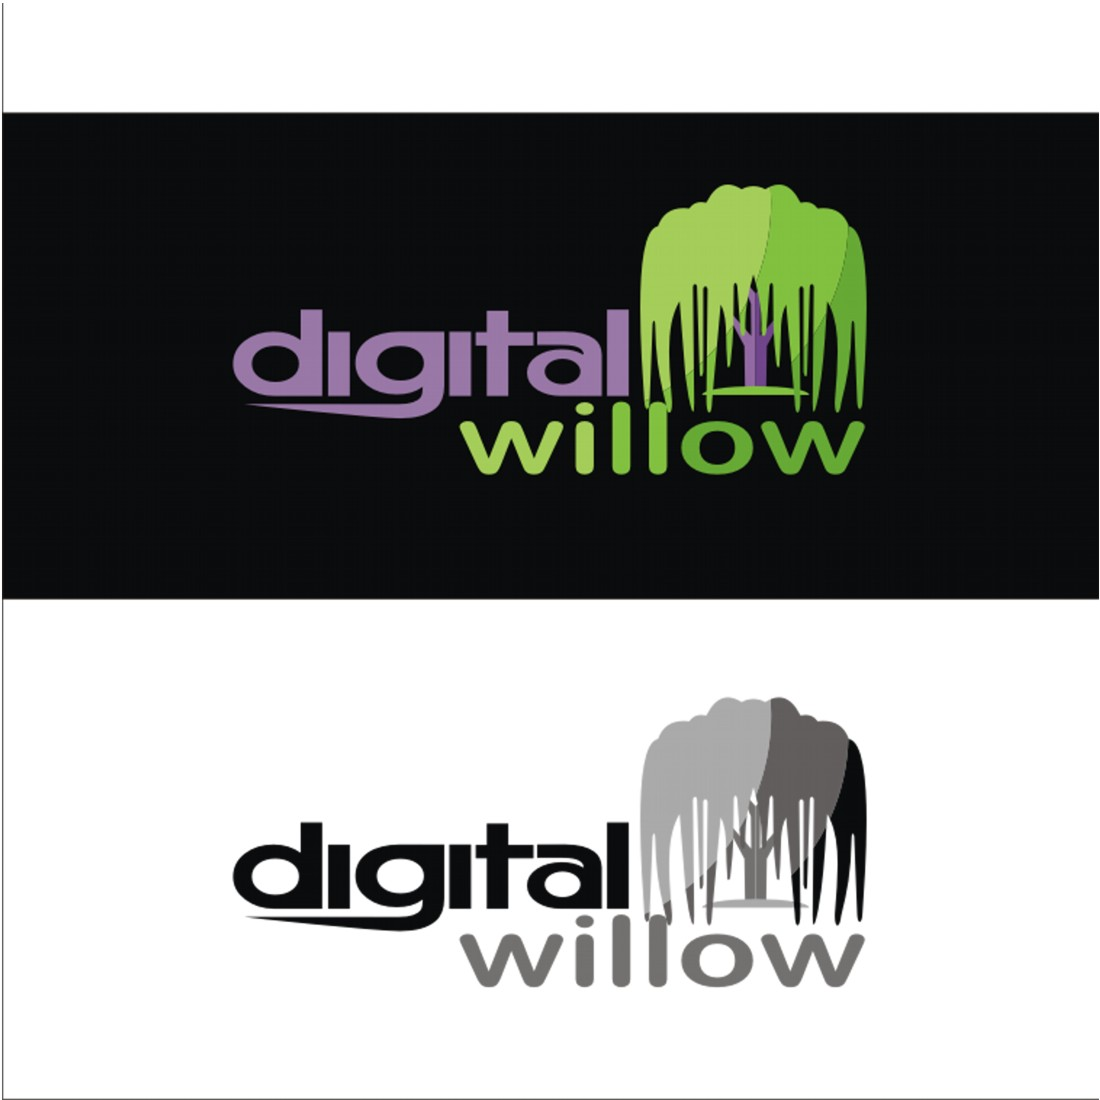 Modern, Colorful, Marketing Logo Design for Digital Willow by jos